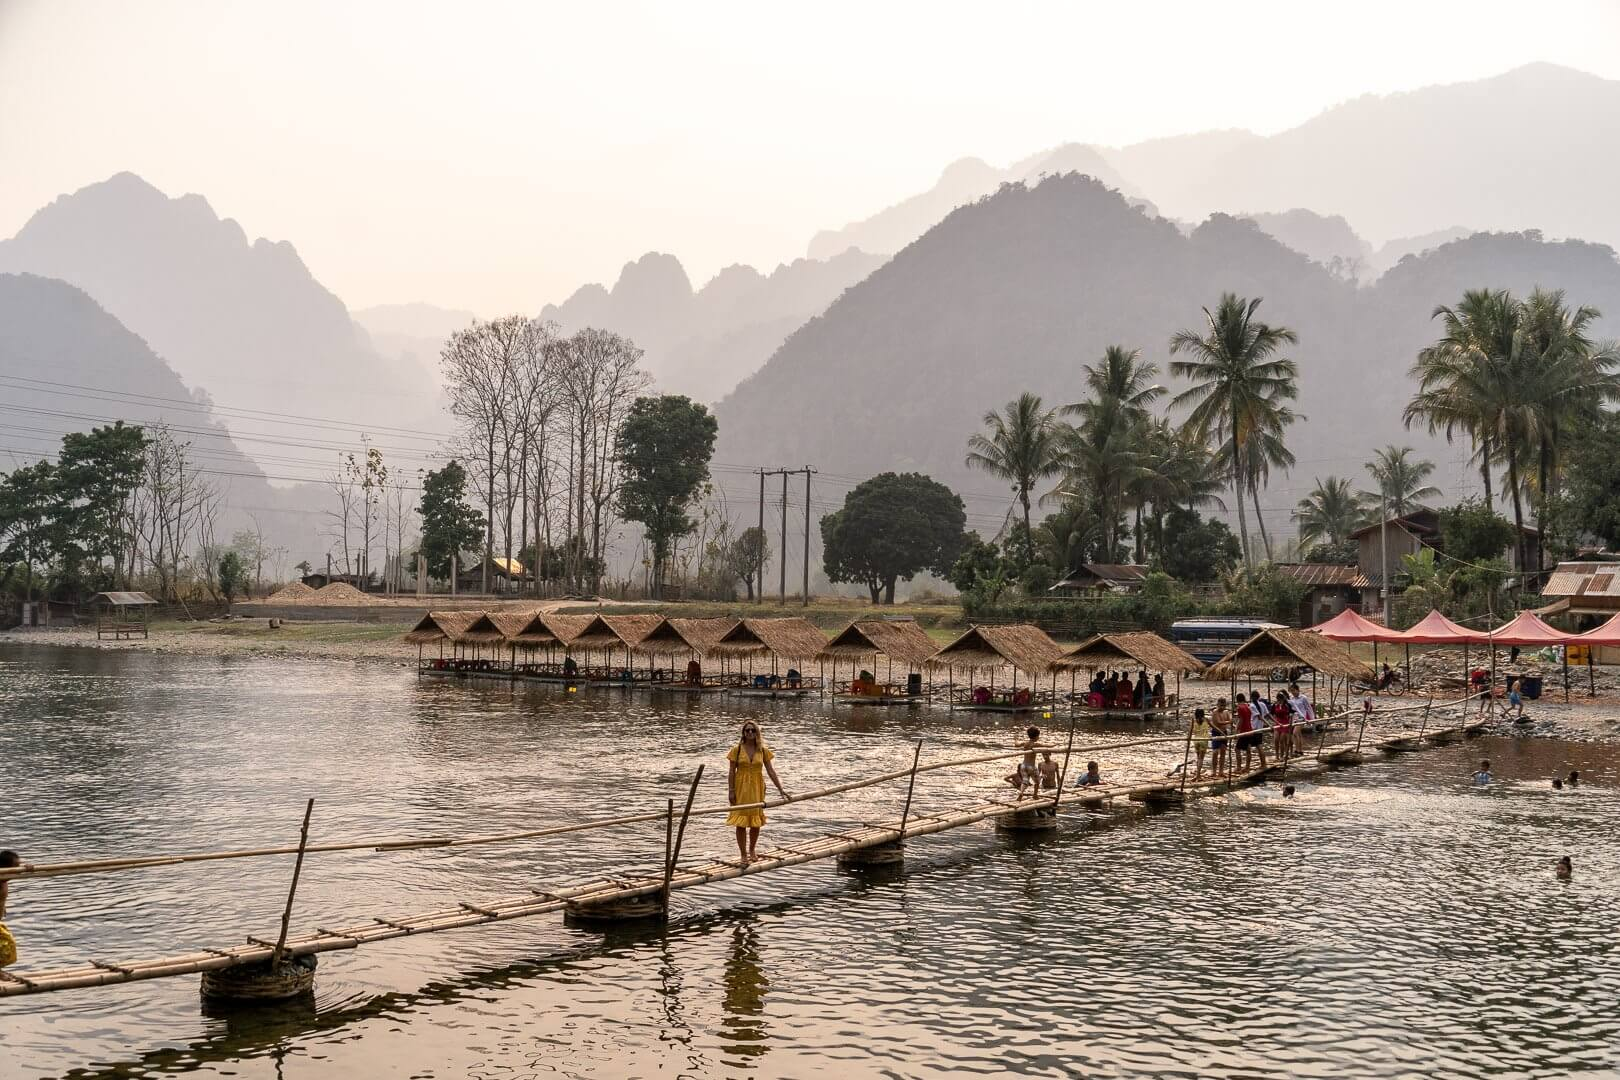 Girl walking across the bamboo bridge in Pha Tang, Laos